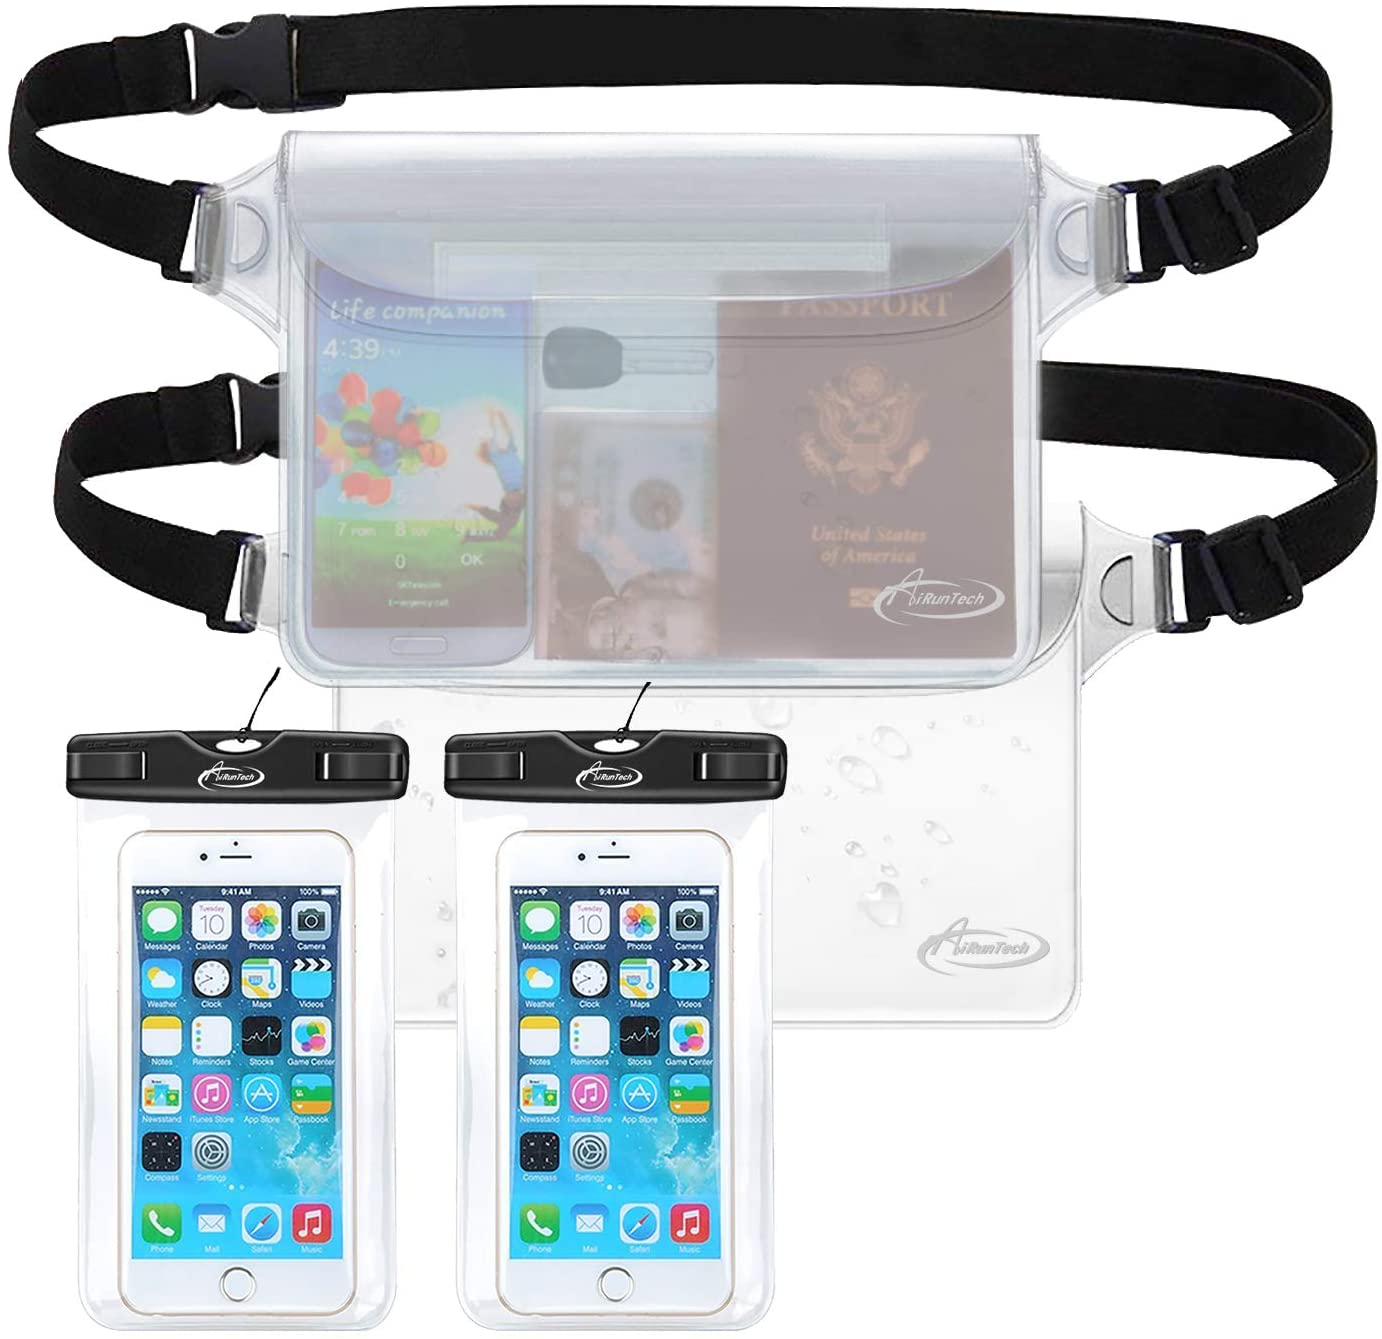 AiRunTech Waterproof Cell Phone Bag, 4 Pack Waterproof Dry Bag for Fishing, Sledding,Skating,Skiing,Snowshoeing Universal Waterproof Pouch for iPhone(2 Phone case(Clear) + 2 Fanny Pack(Clear))